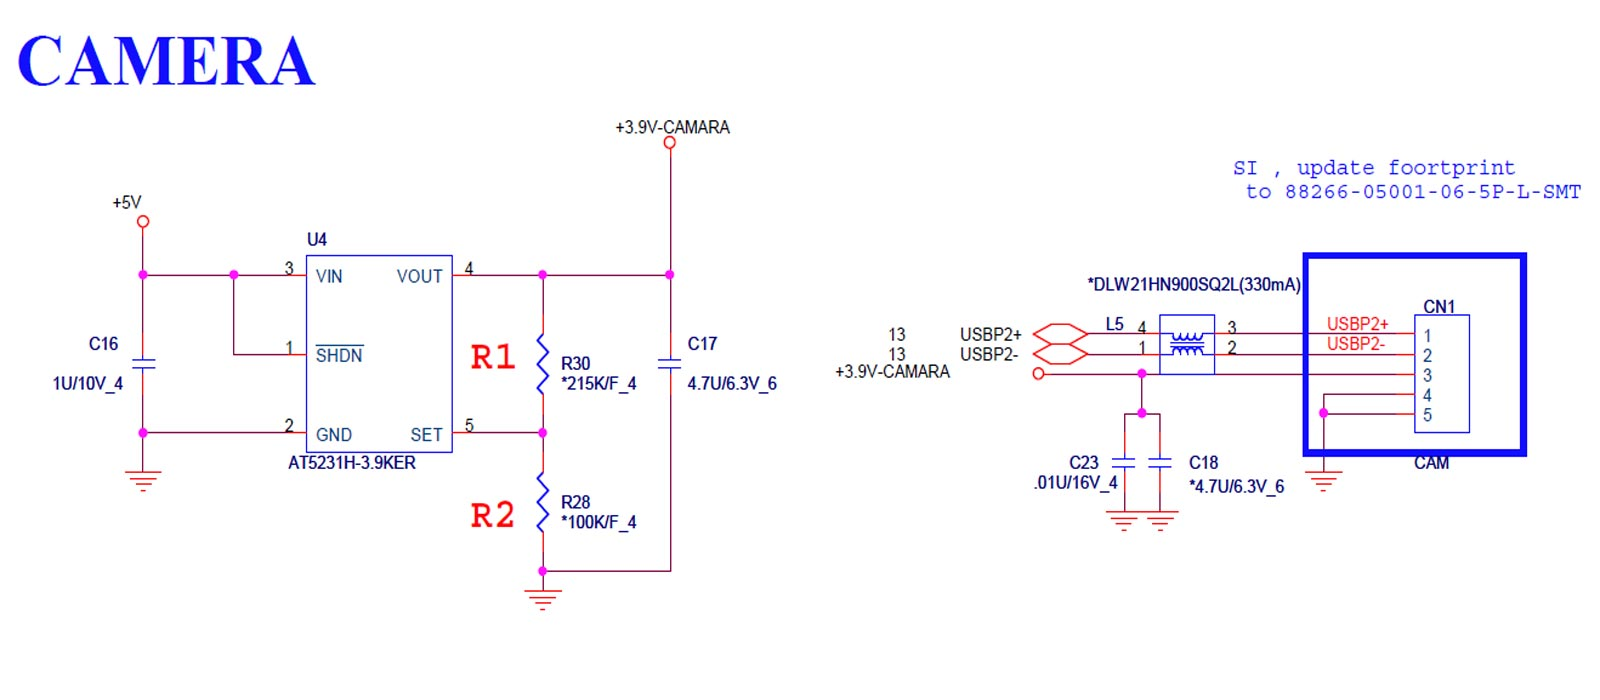 Camera Usb Wire Schematic - Wiring Diagram For Light Switch •